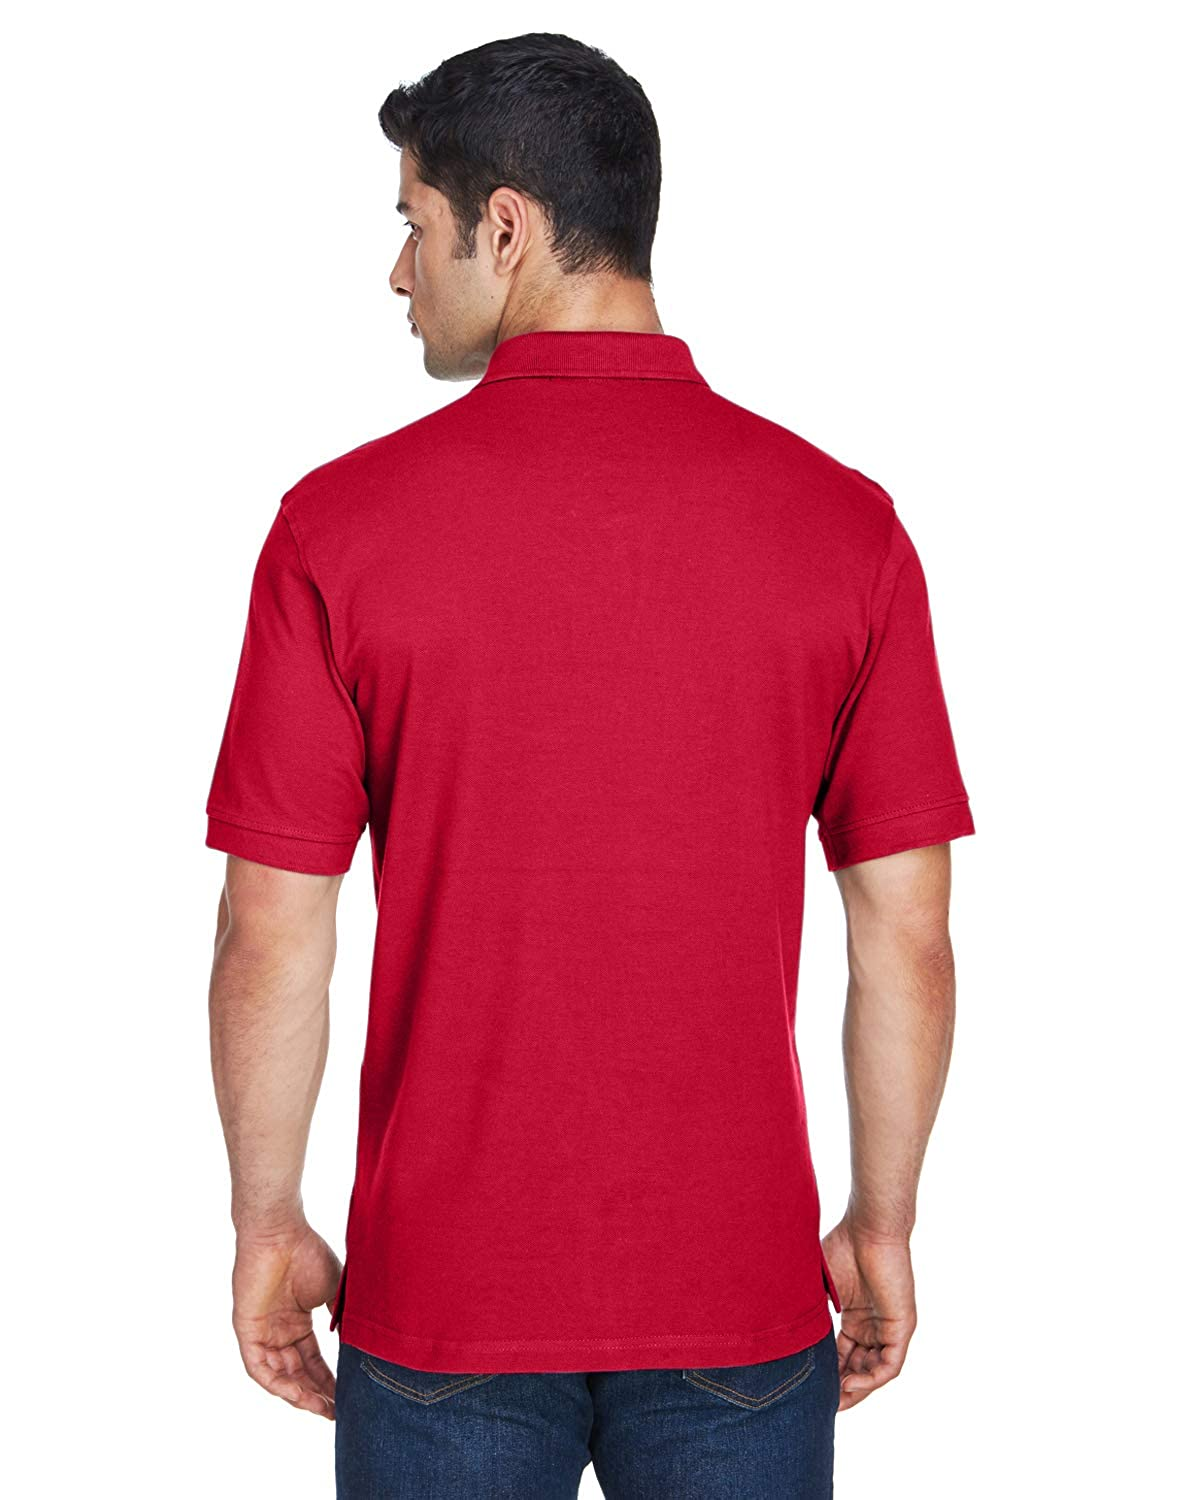 M200 Harriton Mens Ringspun Cotton Pique Short-Sleeve Polo